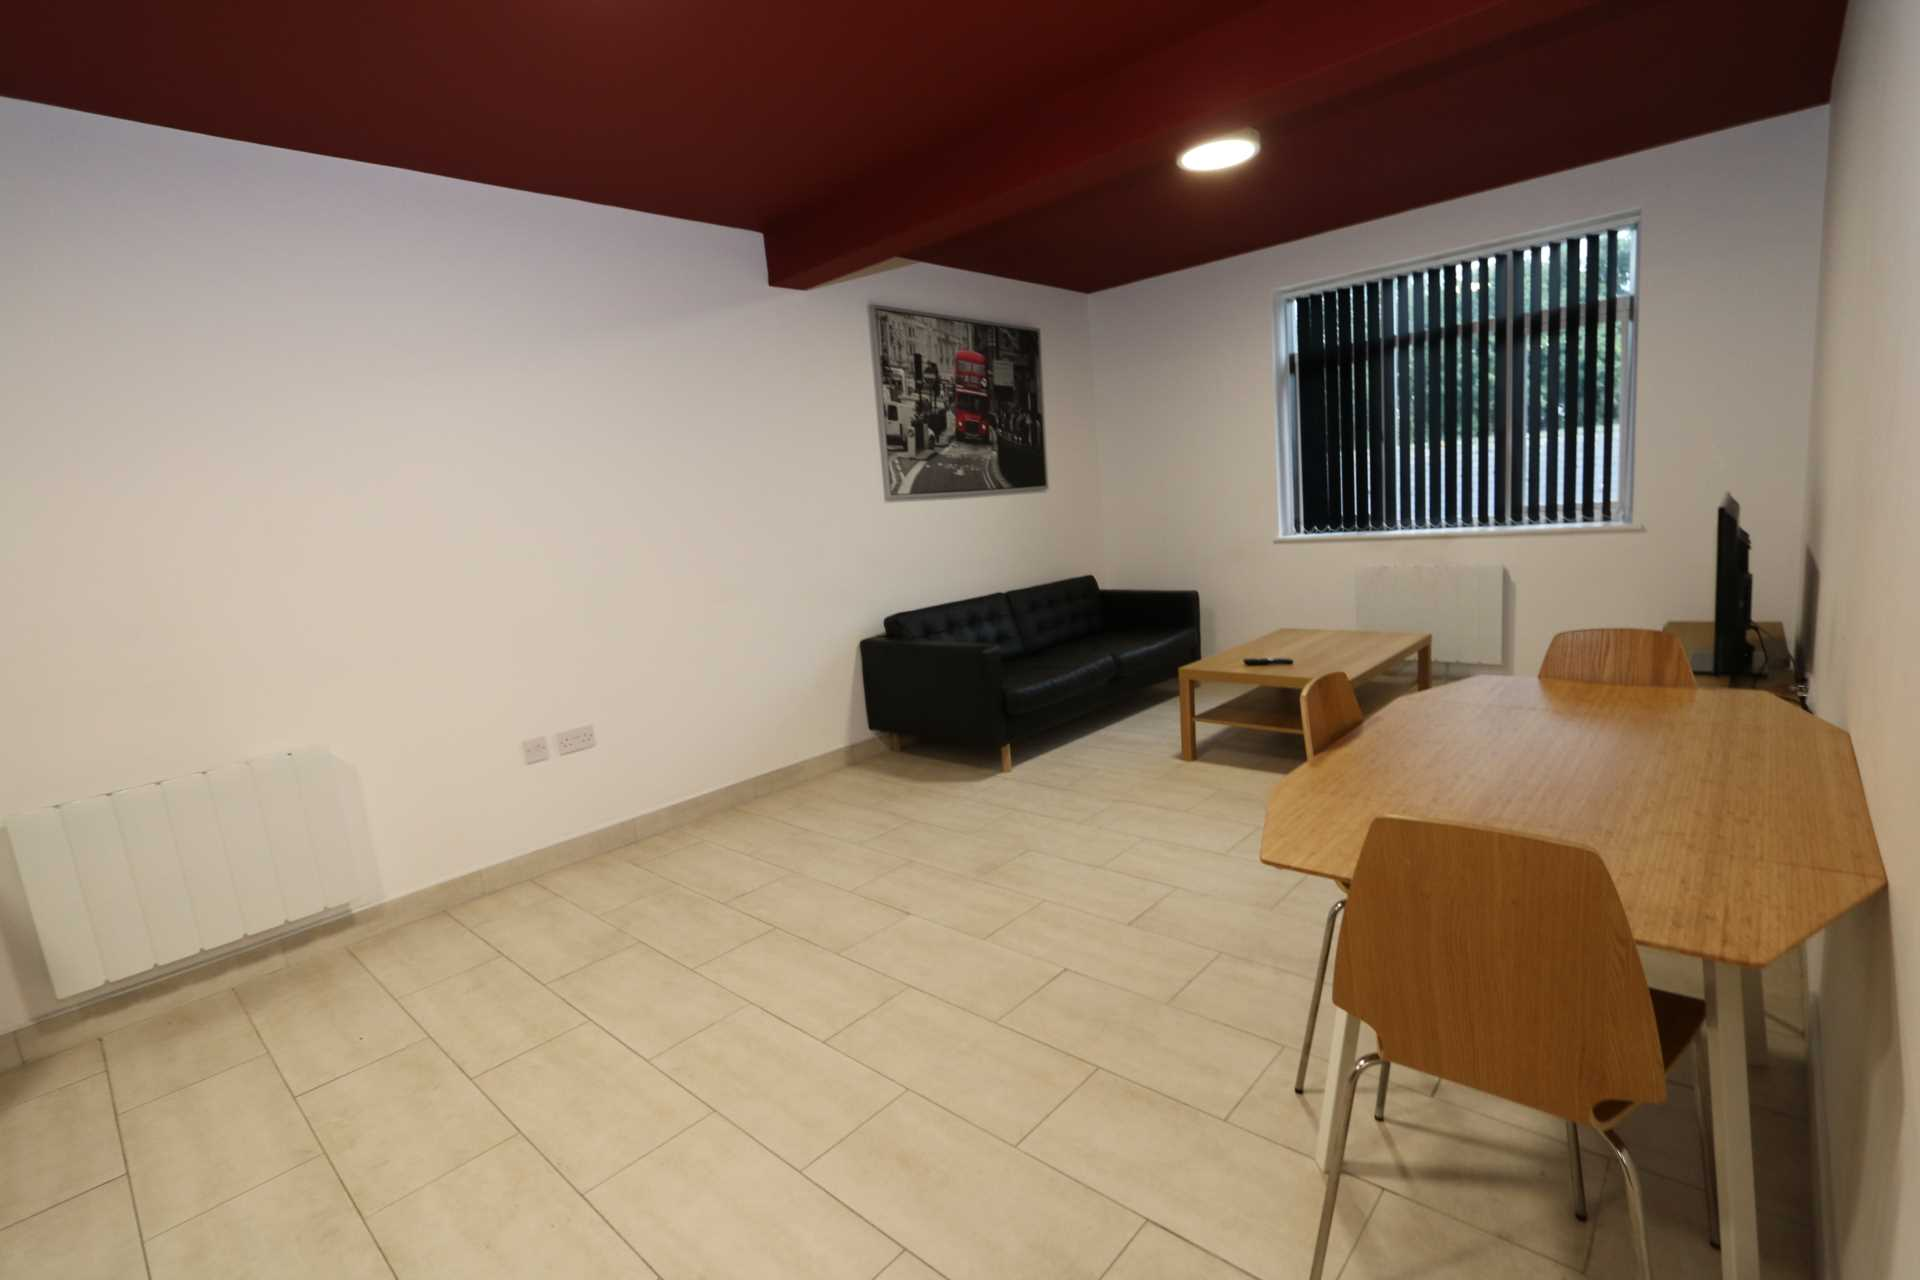 Room 8A Kings Court new development fully furnished student accommodation all bills included - NO FEES, Image 3